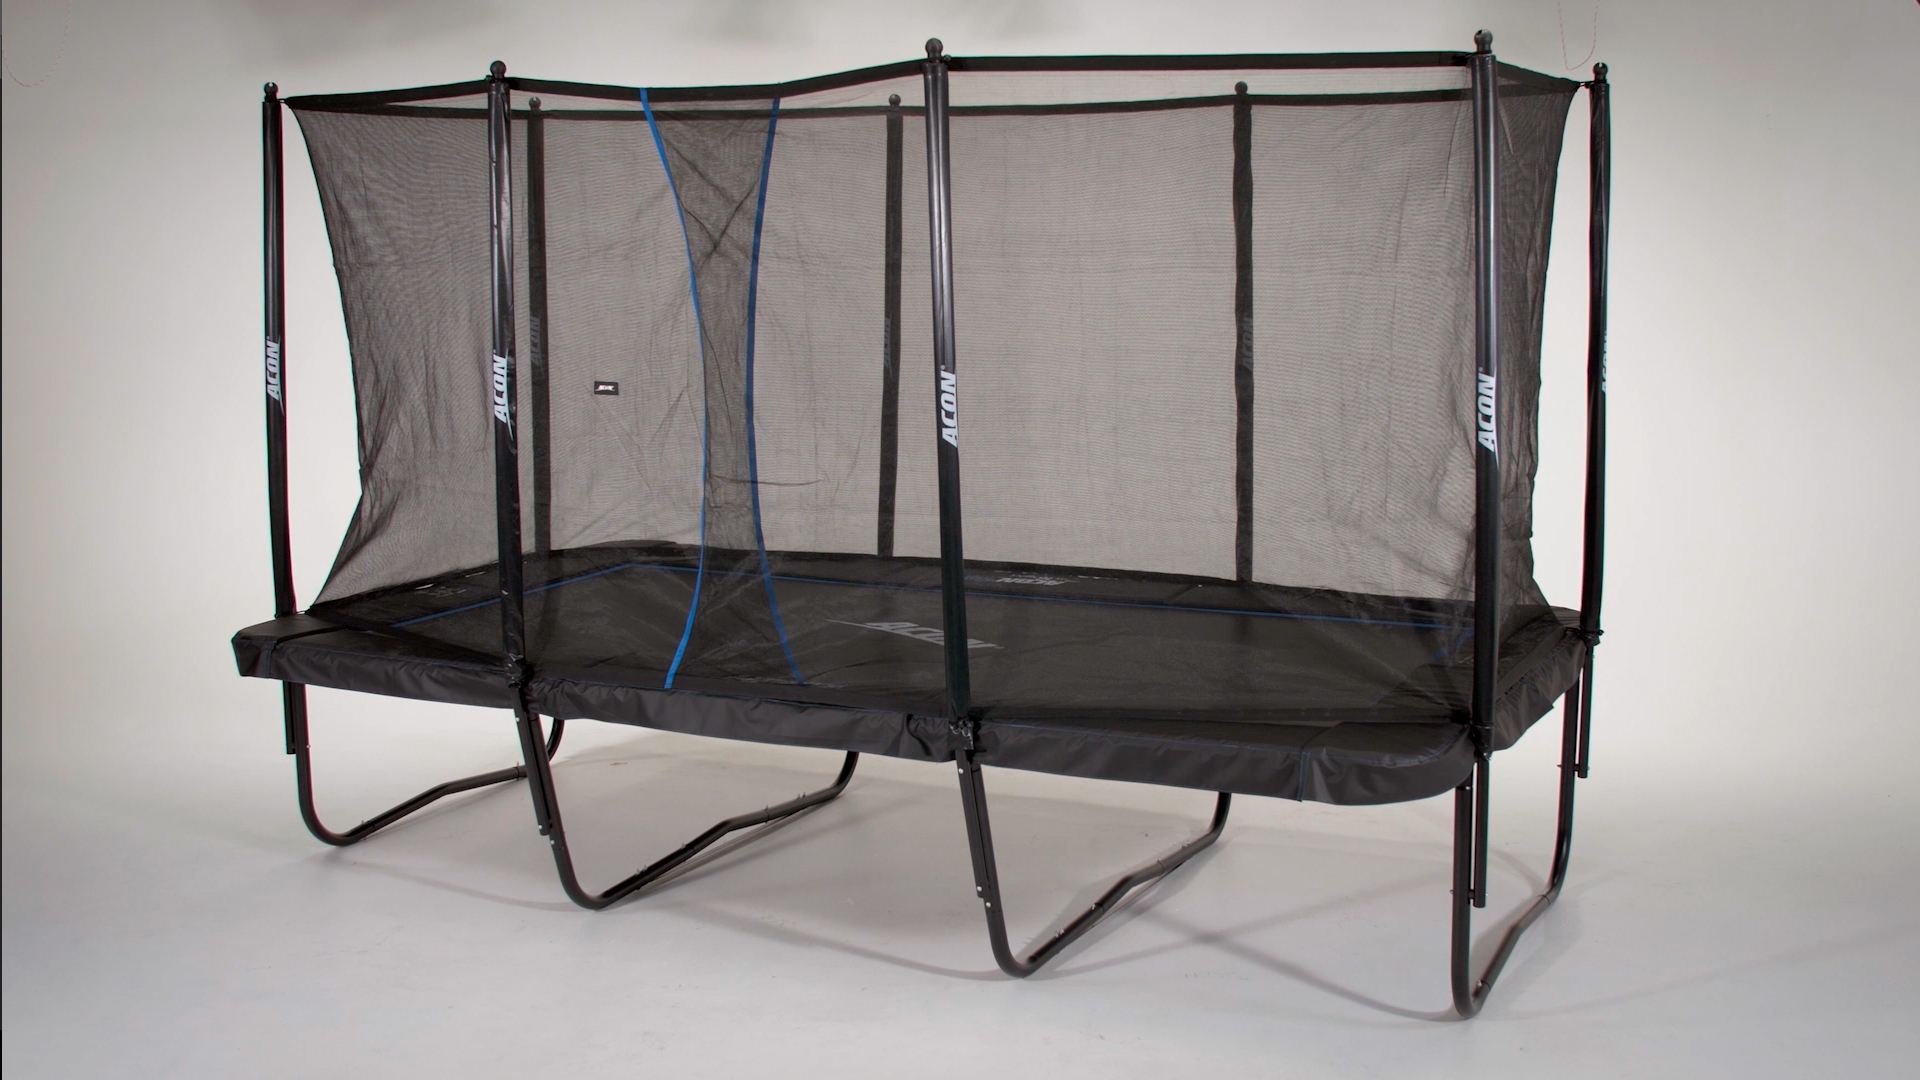 Acon Trampoline Air 16 Sport Hd With Enclosure Includes